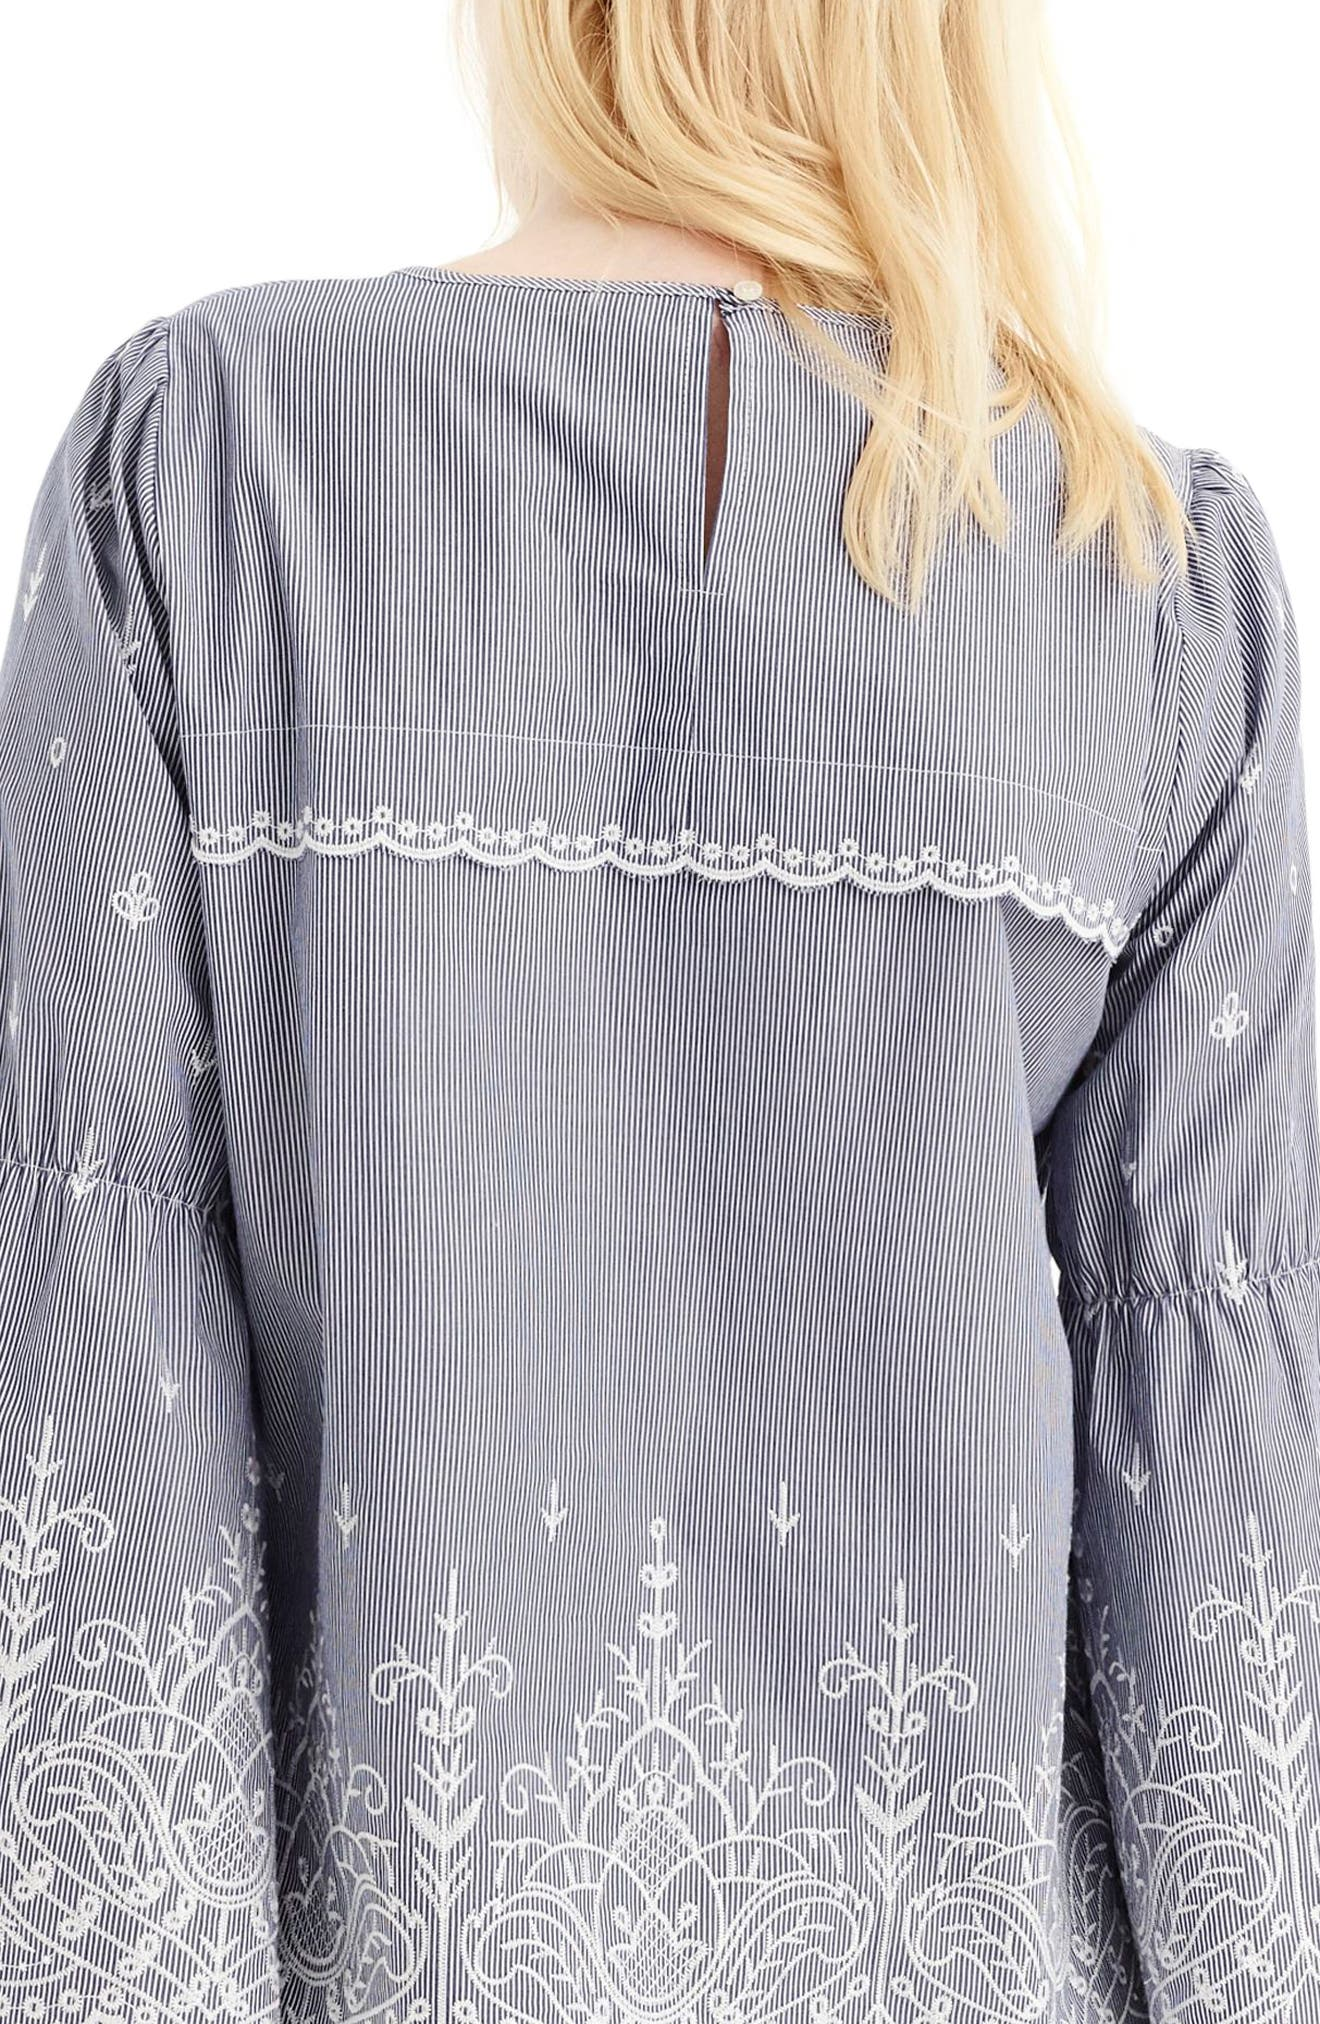 J.Crew Embroidered Stripe Poplin Bell Sleeve Blouse,                             Alternate thumbnail 2, color,                             Dark Ink